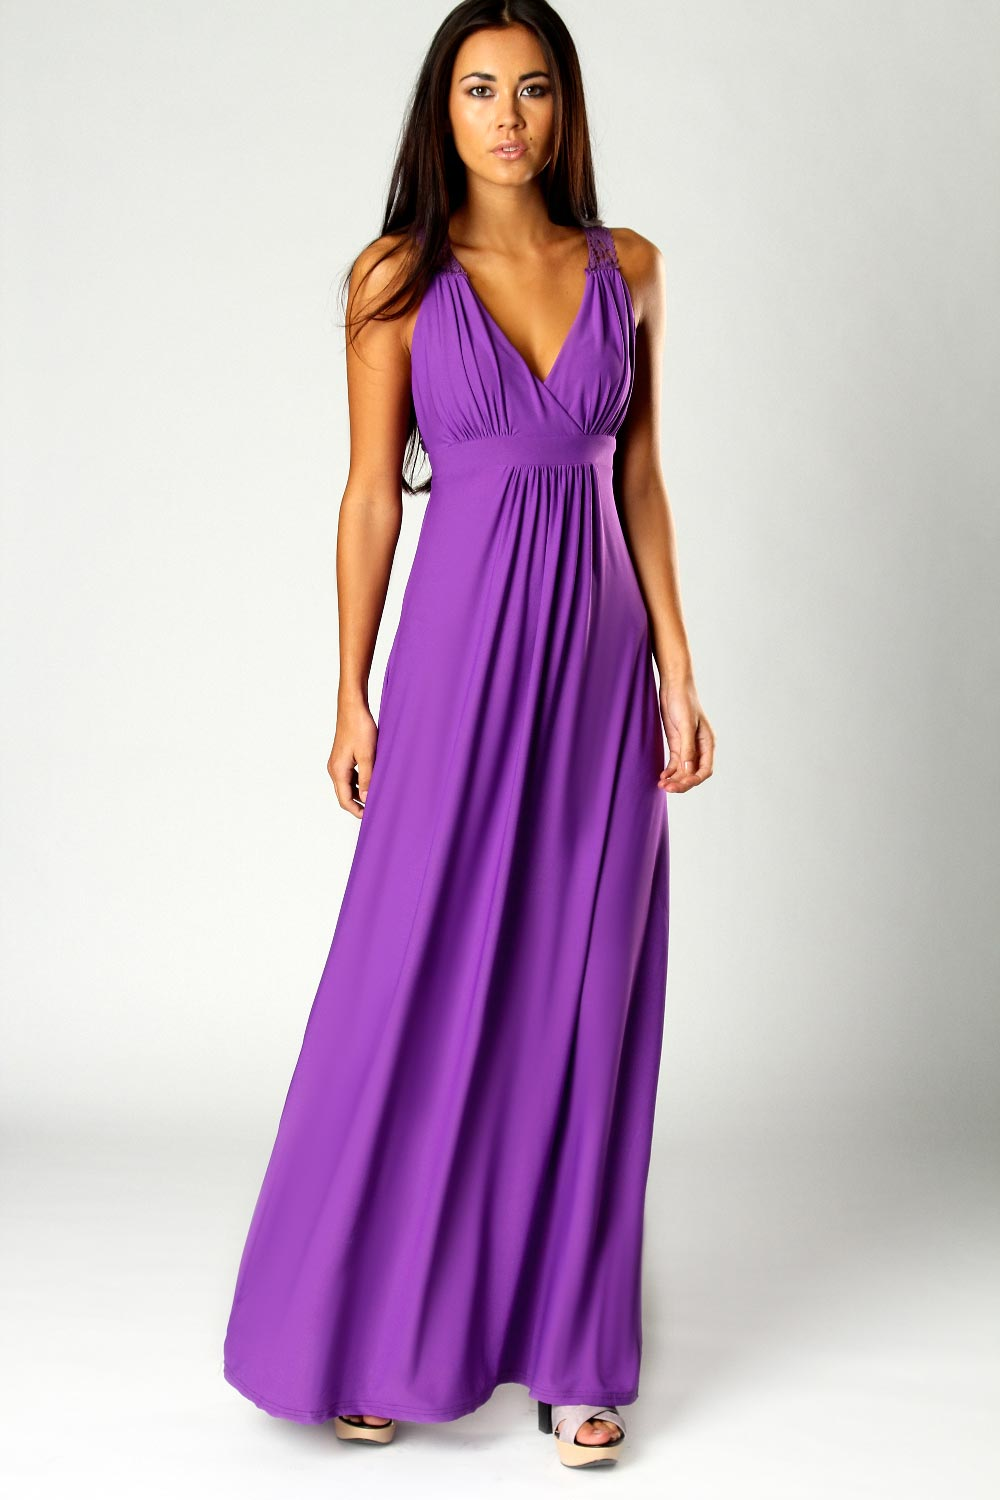 Maxi Dresses. If you are shopping for the perfect dress but looking for something a little longer, check out our maxi dresses selection. With hemlines reaching your ankle or the floor, these dresses are the perfect choice for some of your wardrobe staples.